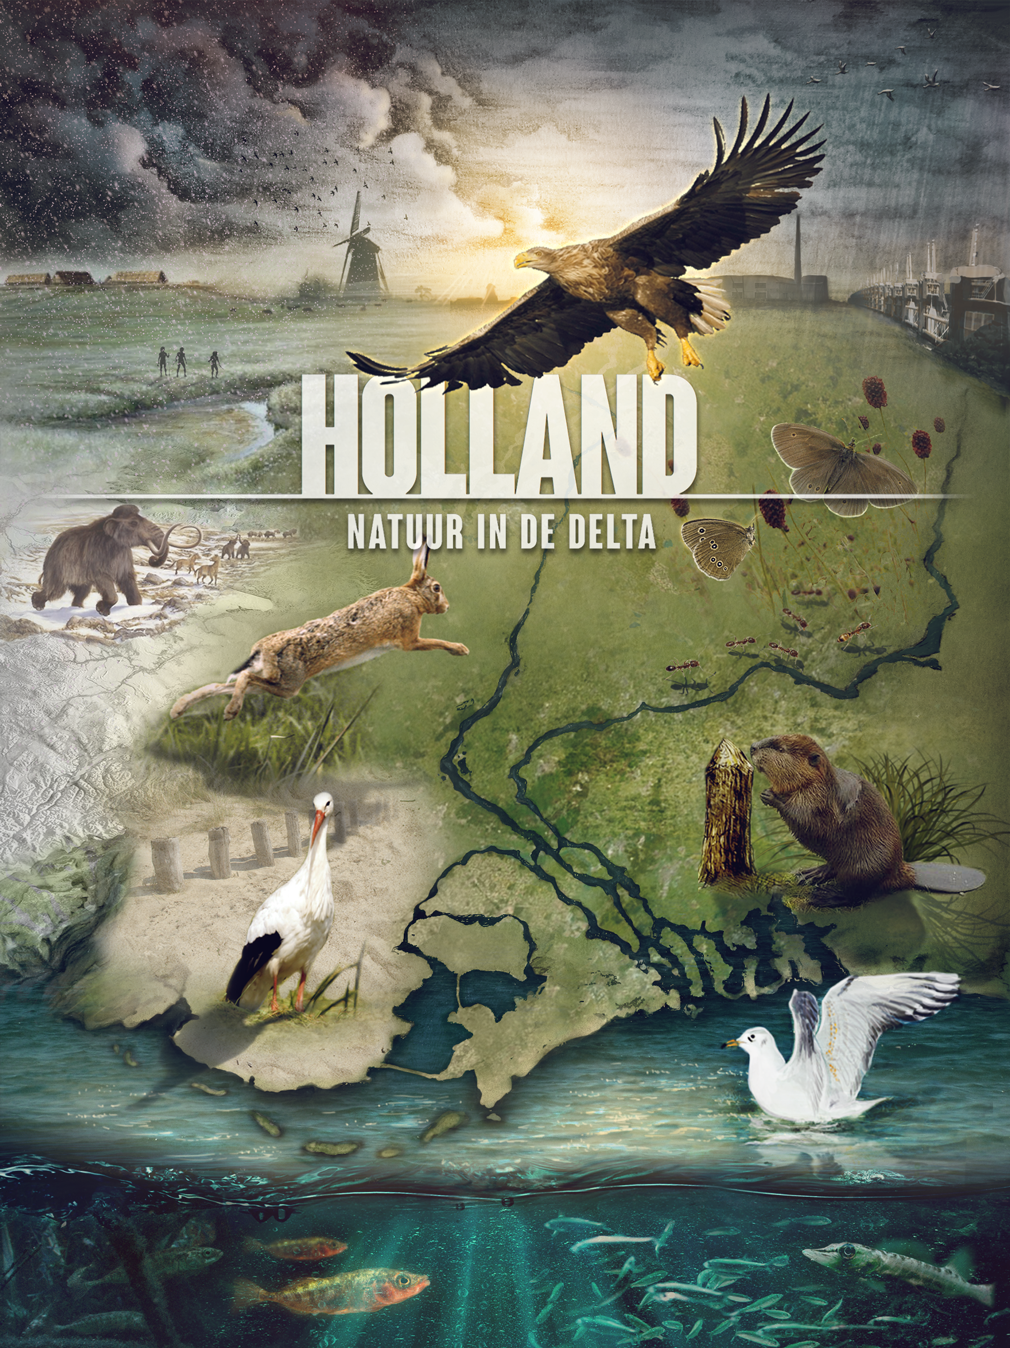 Holland - The Living Delta 3D model - Illustration with Adobe Photoshop